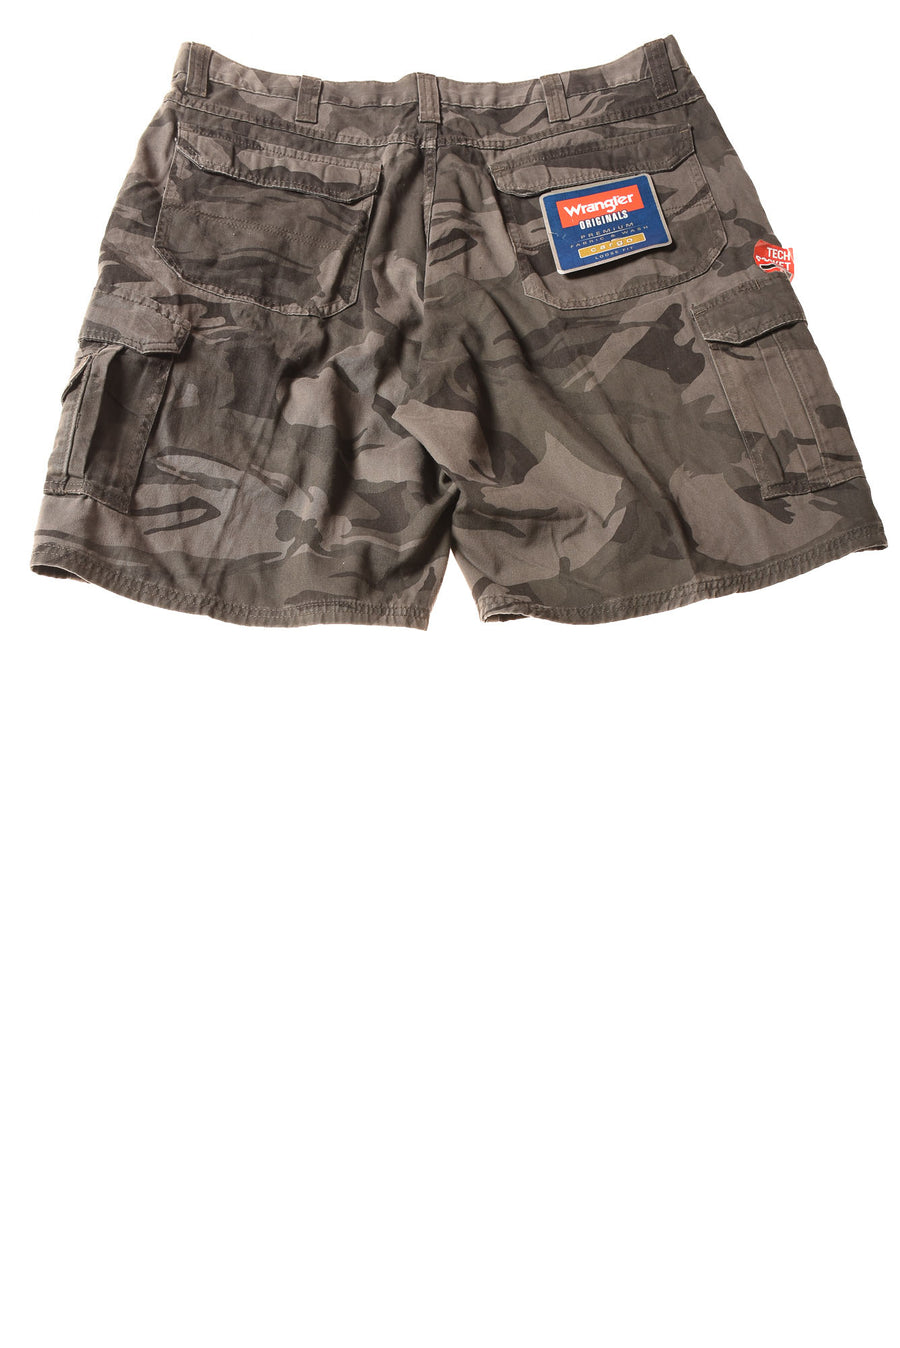 NEW Wrangler Men's Shorts 38 Gray/Camo